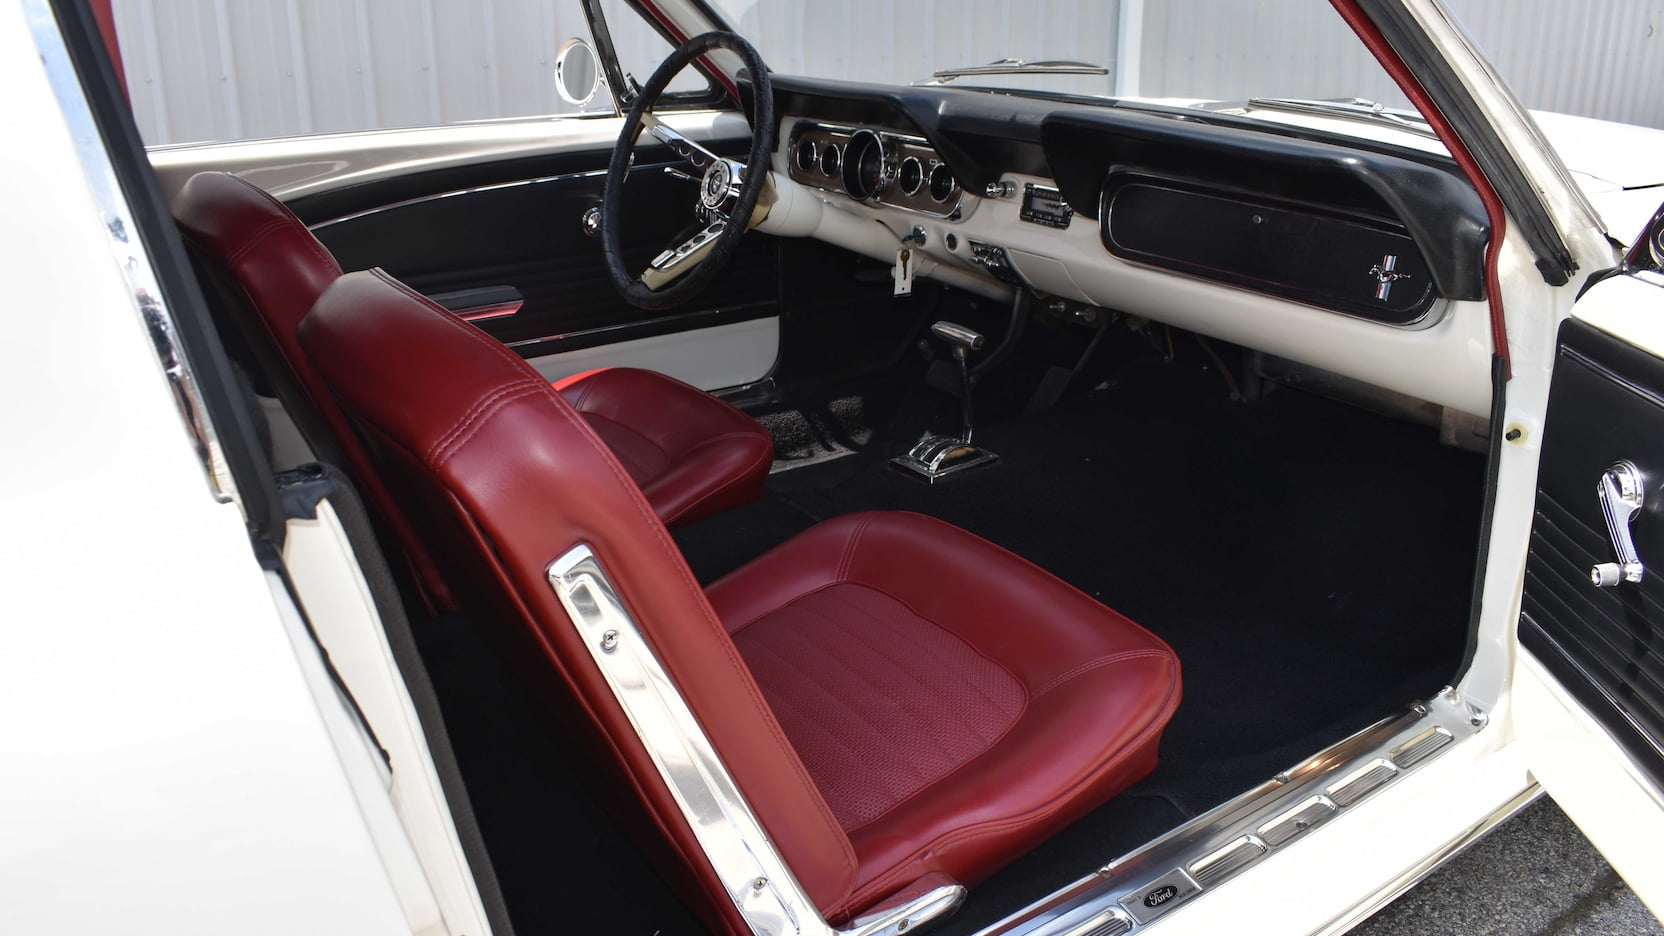 Ford Mustang Limousine interior